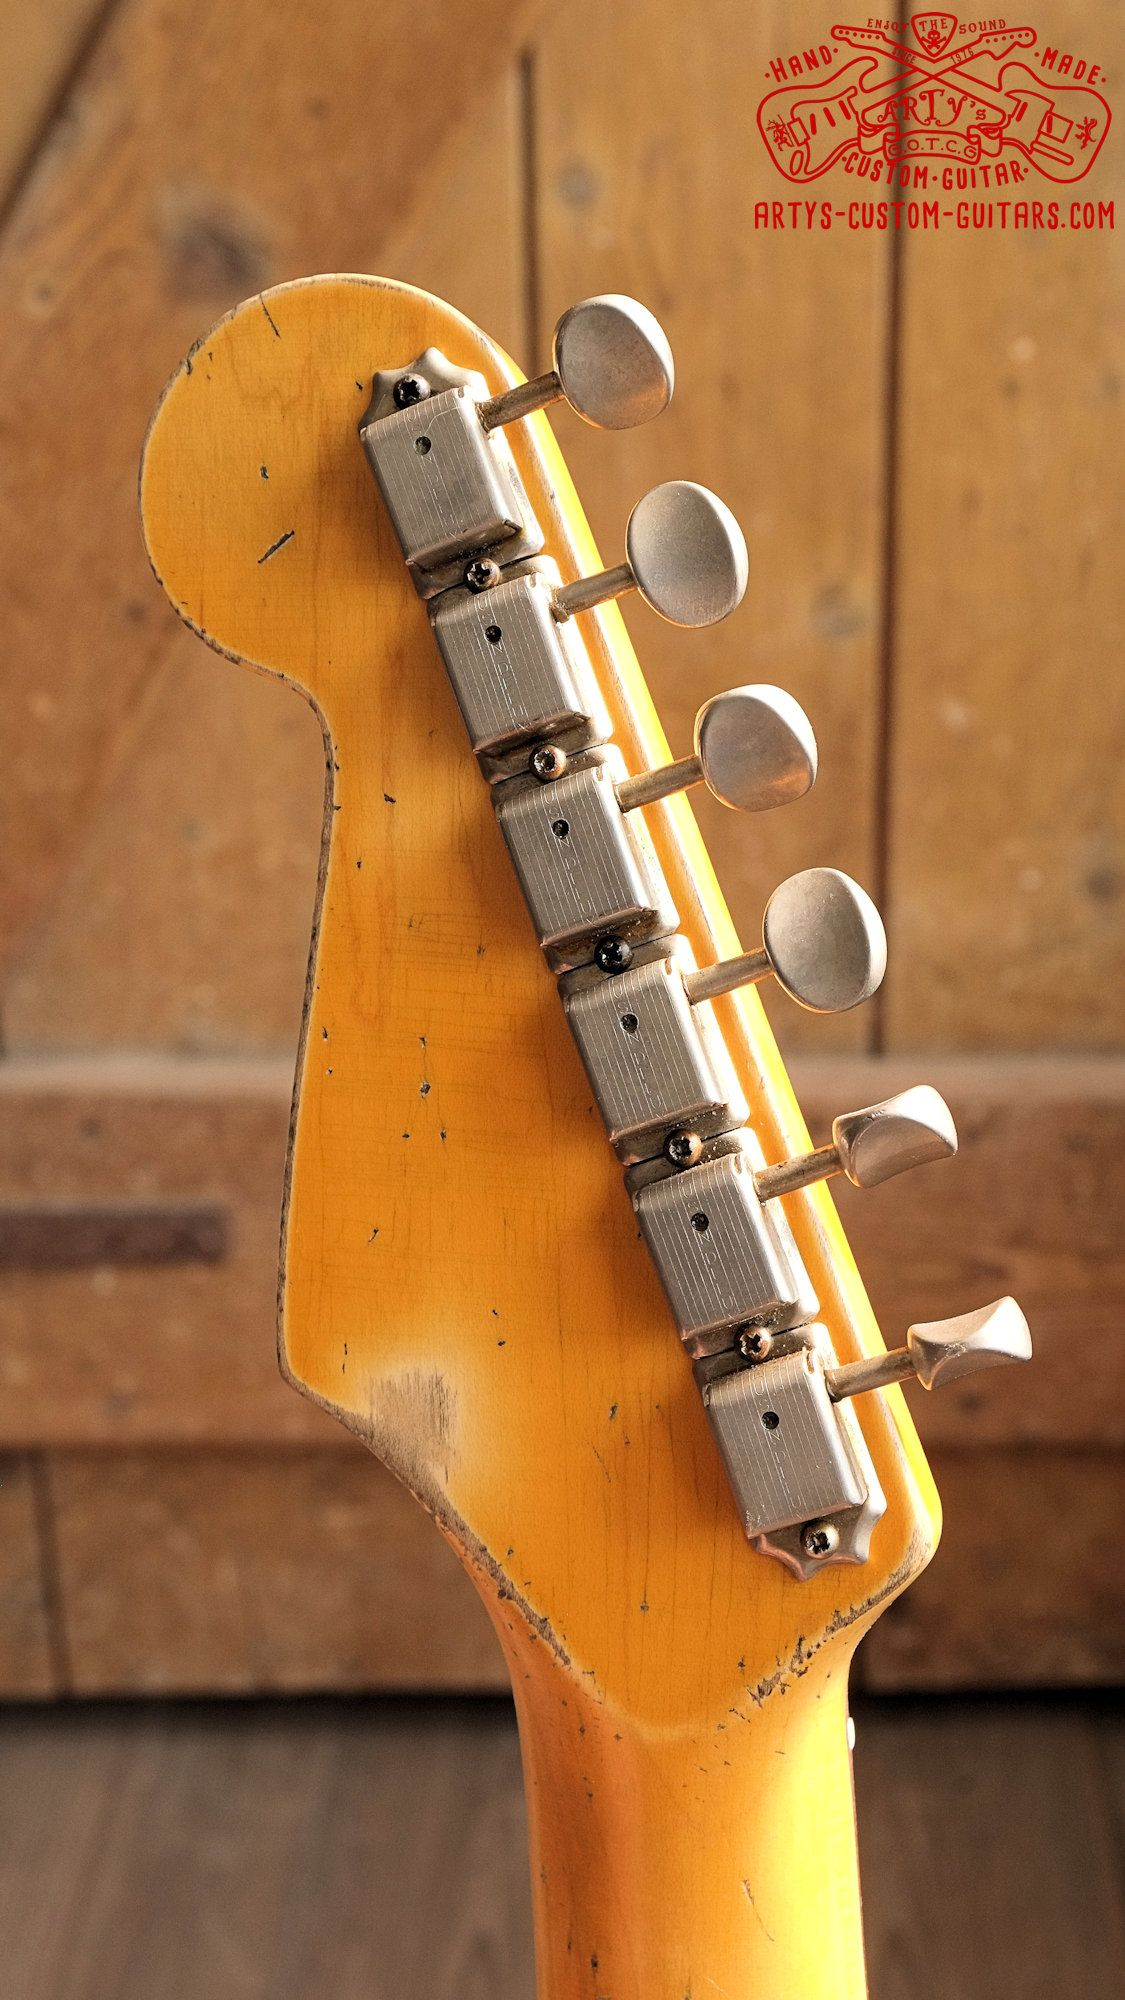 Stratocaster 62 Heavy Relic Fiesta Red Body Artys Custom Guitars Shop Strat Relicing Swamp Ash